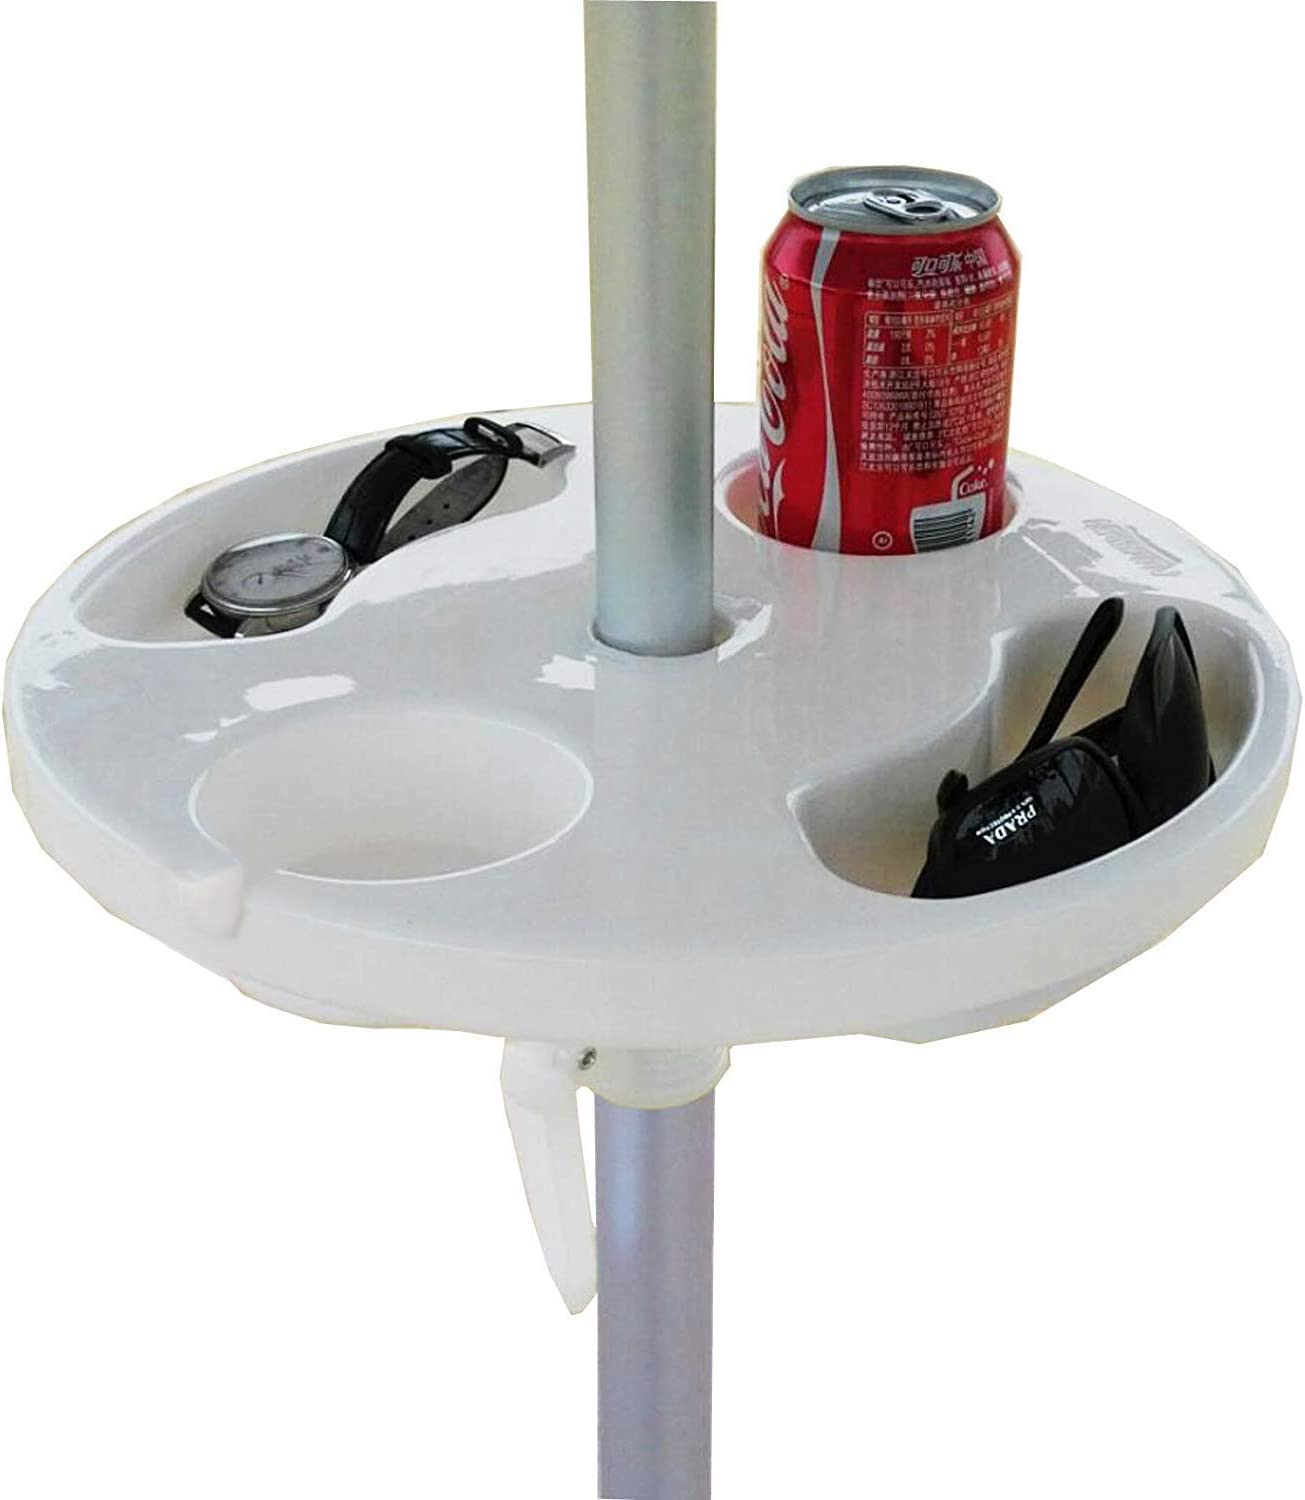 AMMSUN 12 Beach Umbrella Table Tray for Beach, Patio, Garden, Swimming Pool with Cup Holders, Snack Compartments White